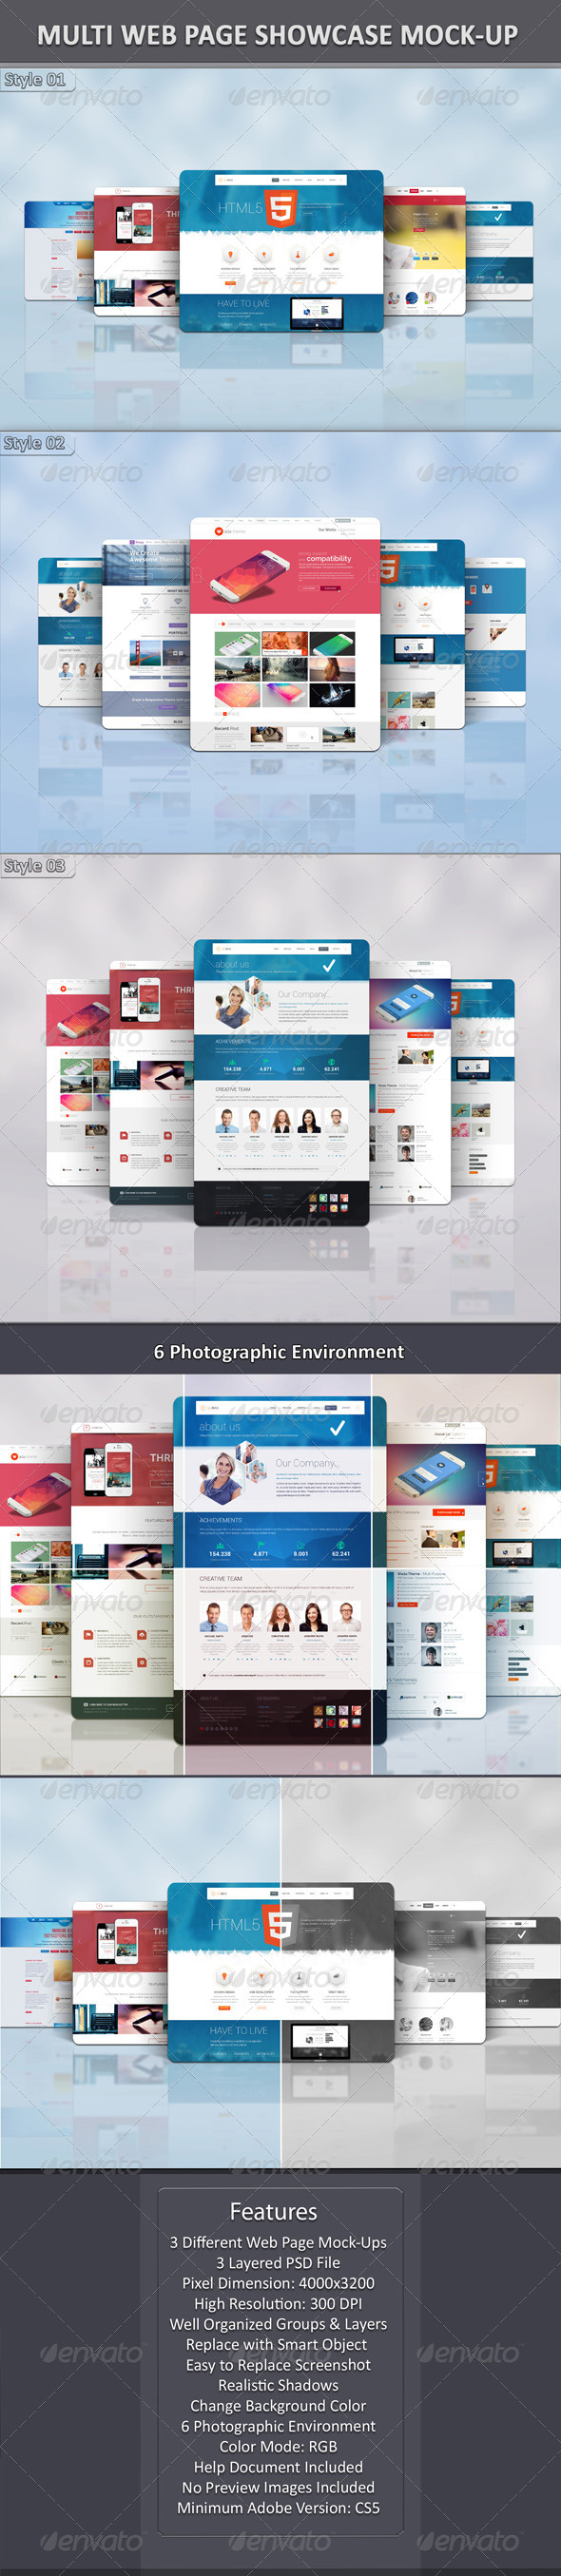 GraphicRiver Multi Web Page Showcase Mock-Up 7550330